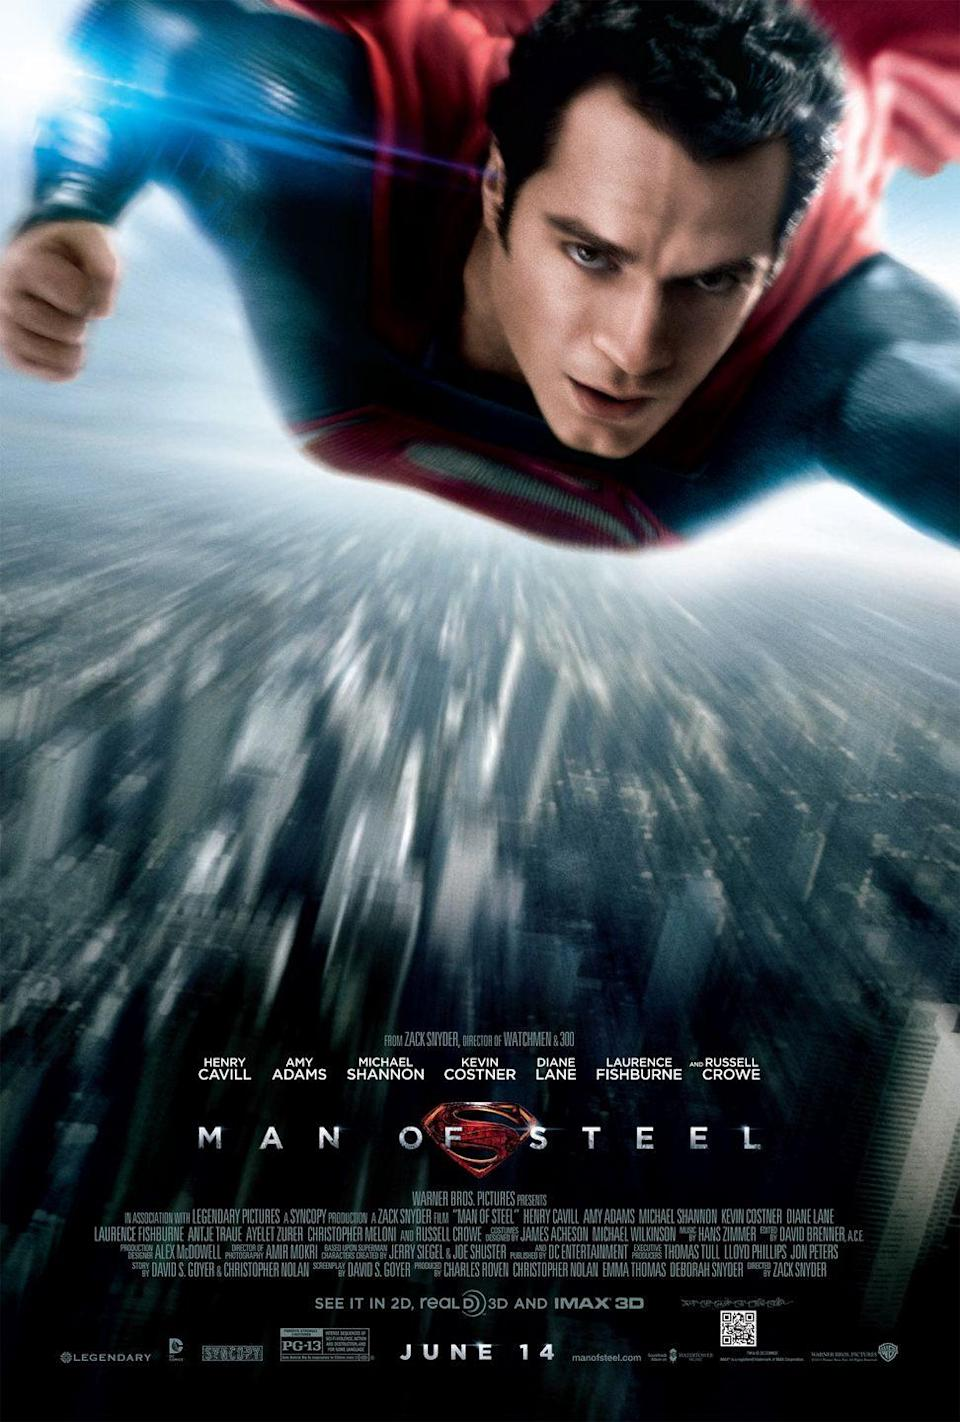 <p><em>Man of Steel</em> came out in a simpler time. Believe it or not, this film came out the same year as <em>Iron Man 3</em>, and a year after the first <em>Avengers</em> film. The timing of <em>Man of Steel </em>is indicative of Warner Bros.' greater overall fumble with the DC Extended Universe. They were late to the game, and instead of having taken their five years lag time behind Marvel to create something great, they debuted a drab and depressing cinematic universe. That said, despite the dull colors, at least DC made an attempt to set itself apart from the MCU. And, for mostly worse, this film set the tone and trajectory for the future of DC movies.</p>